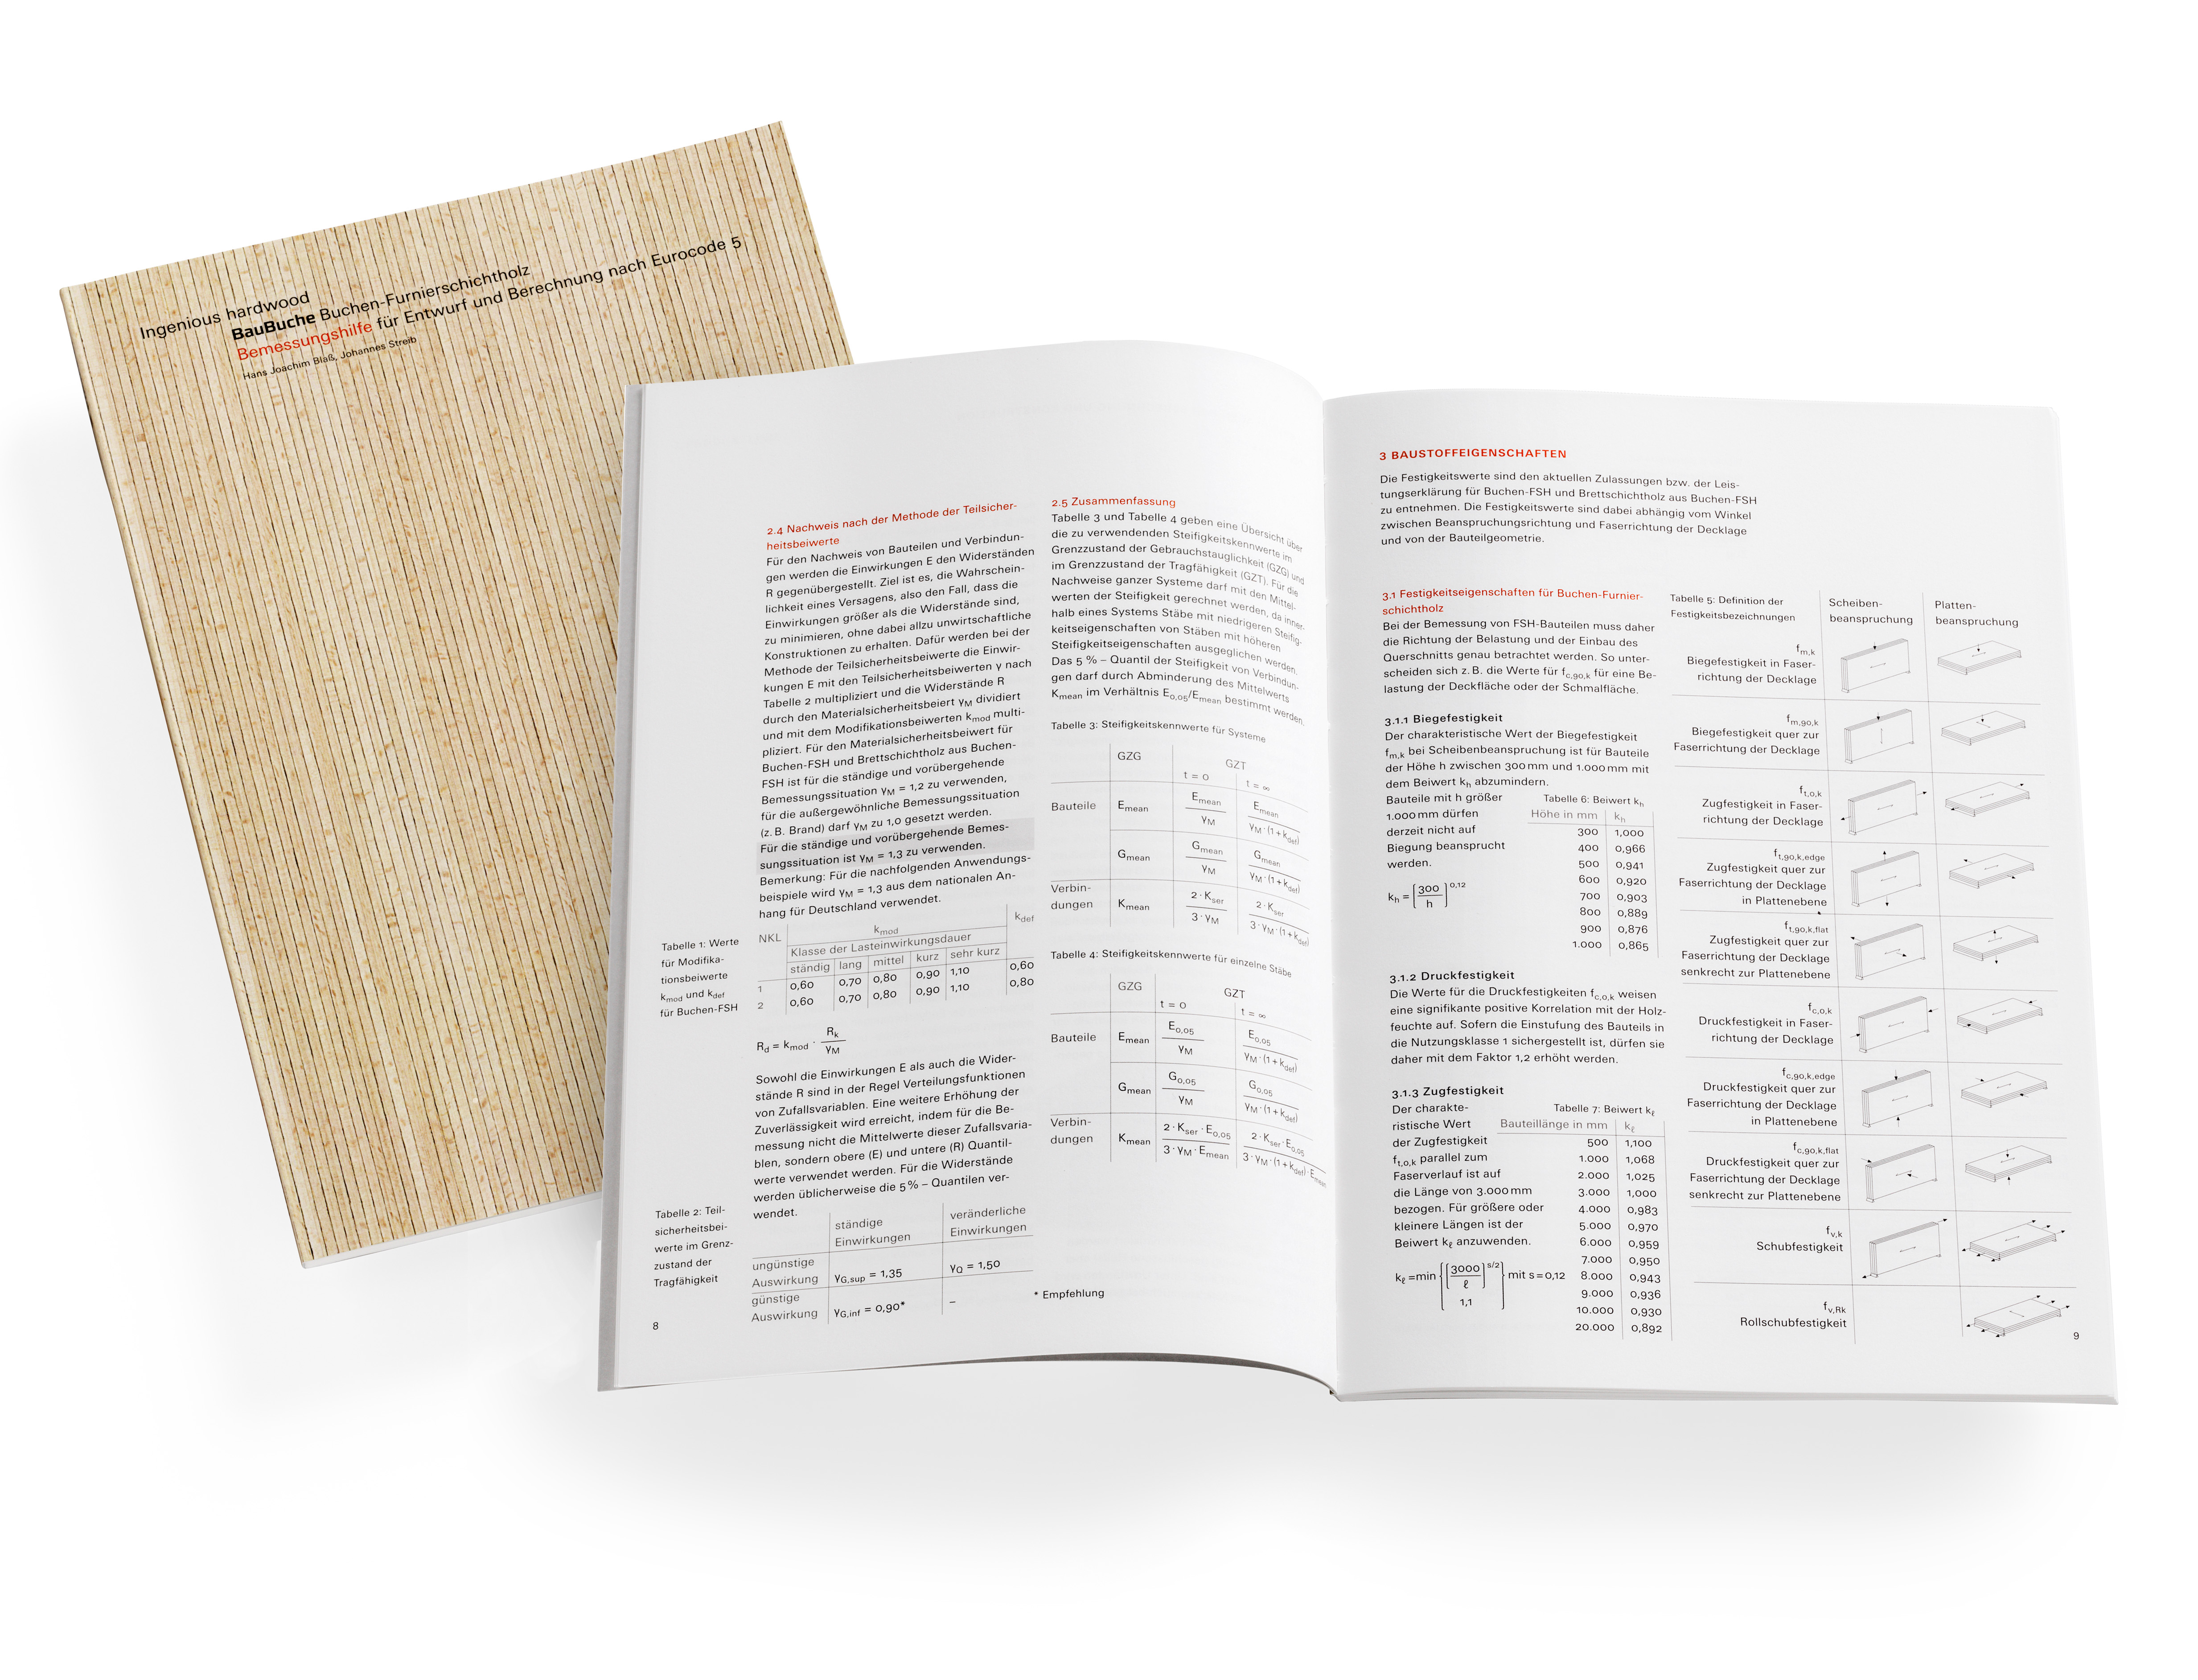 New BauBuche manual for structural calculation